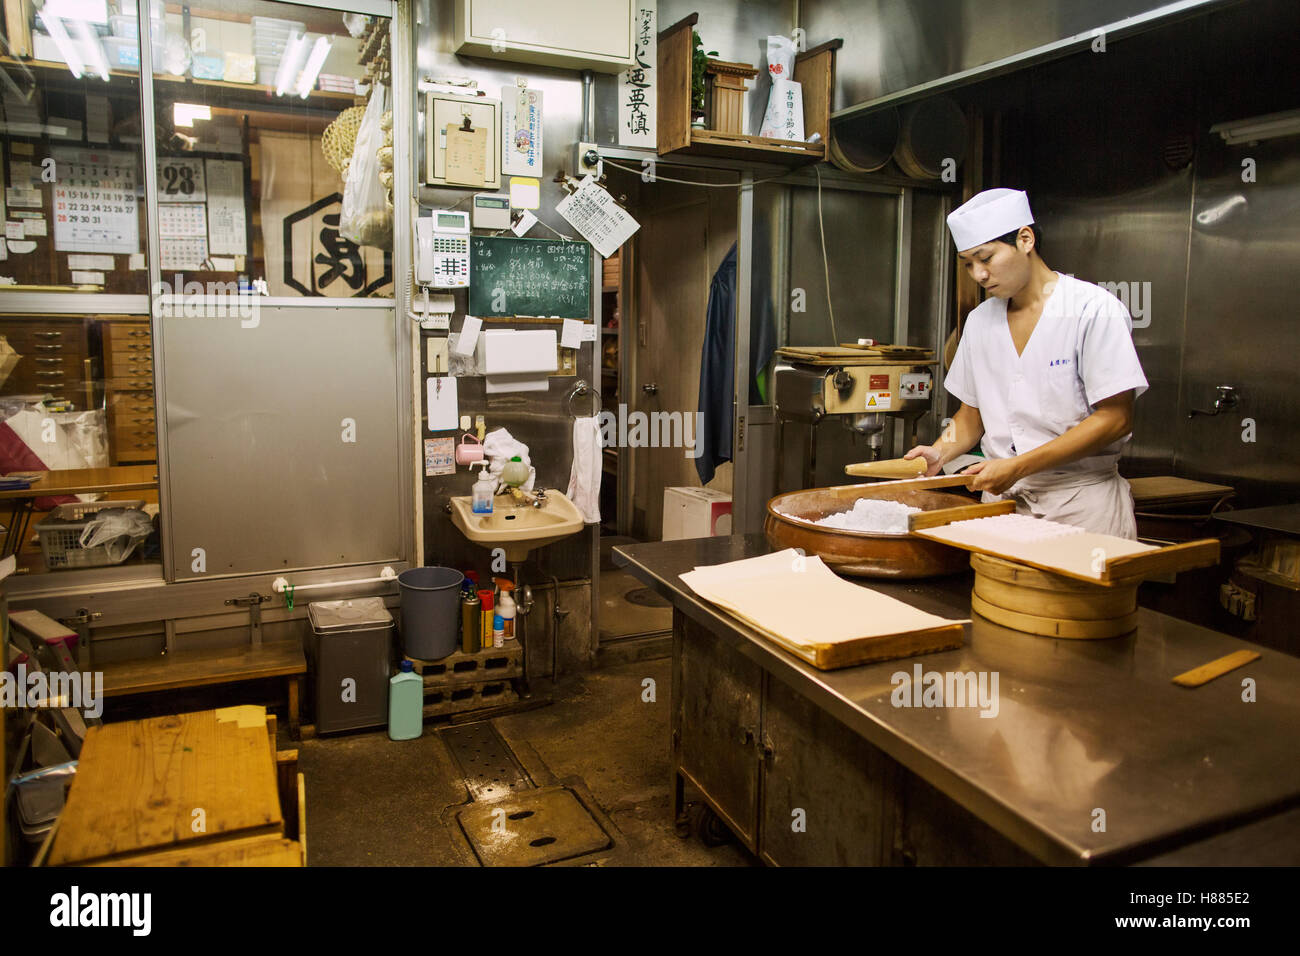 A small artisan producer of wagashi. A man mixing a large bowl of ingredients and pressing the mixed dough into - Stock Image